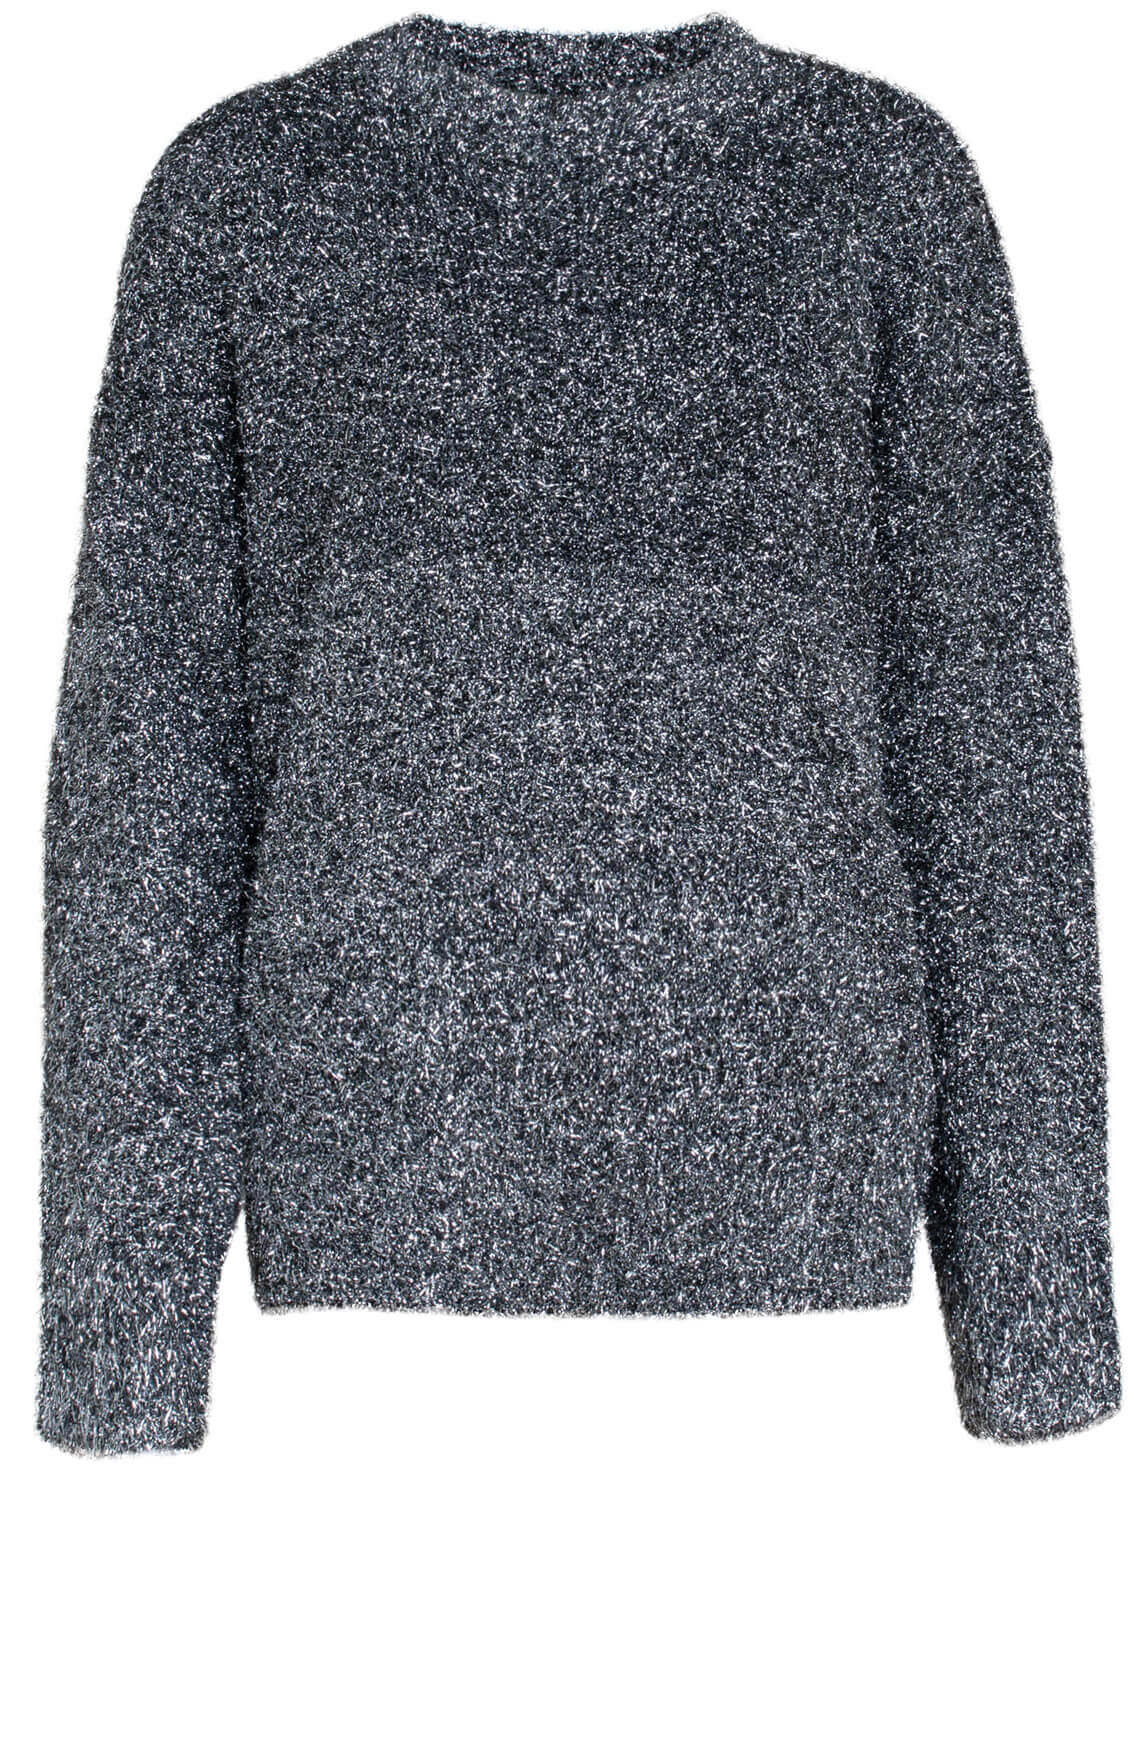 Alix The Label Dames Metallic pullover Zilver